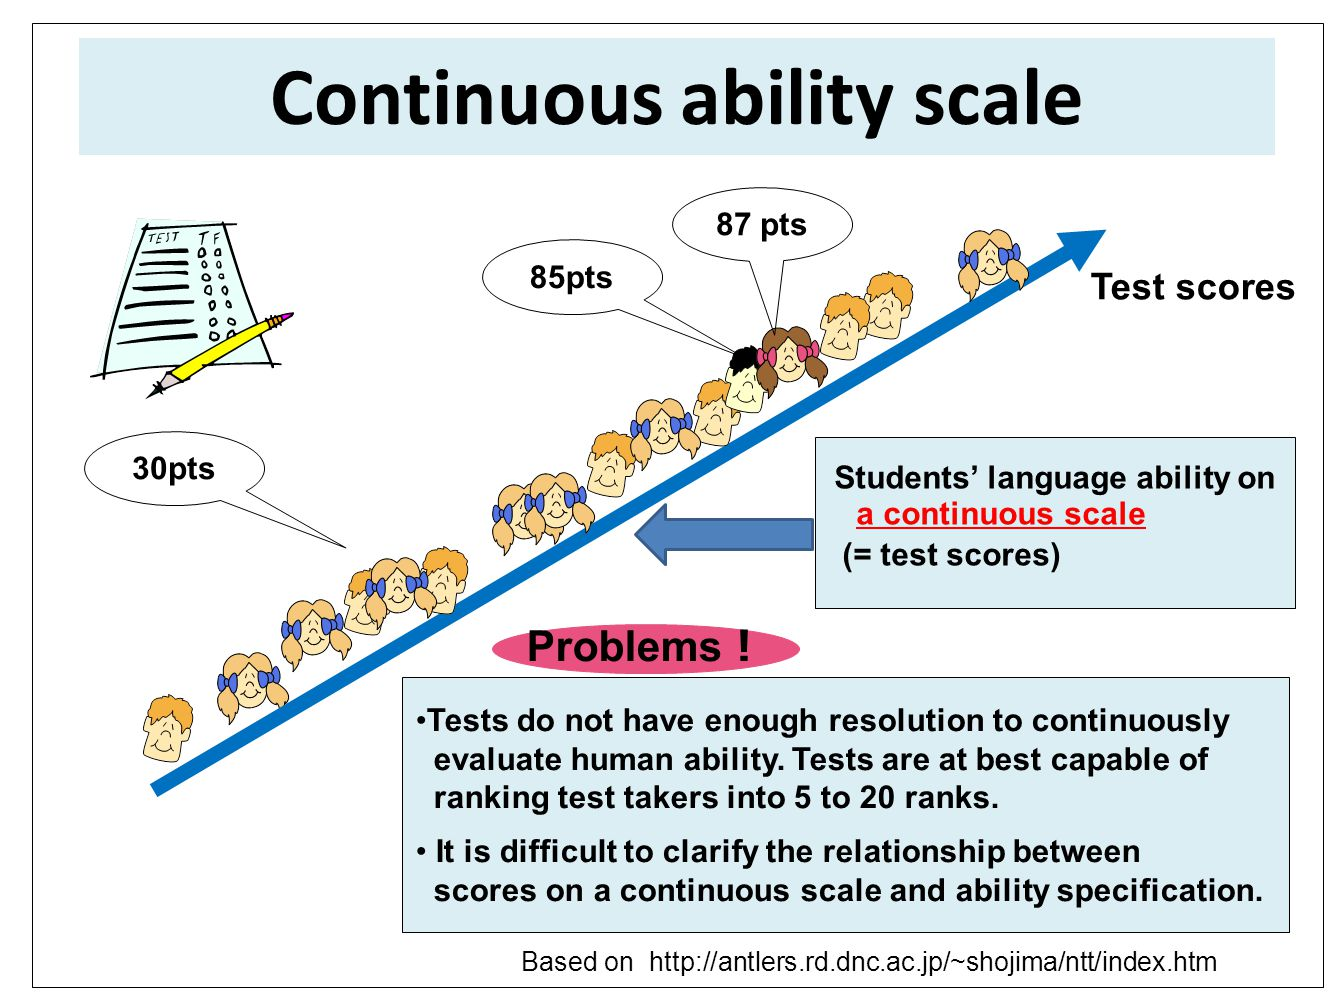 Continuous ability scale Based on http://antlers.rd.dnc.ac.jp/~shojima/ntt/index.htm Tests do not have enough resolution to continuously evaluate human ability.